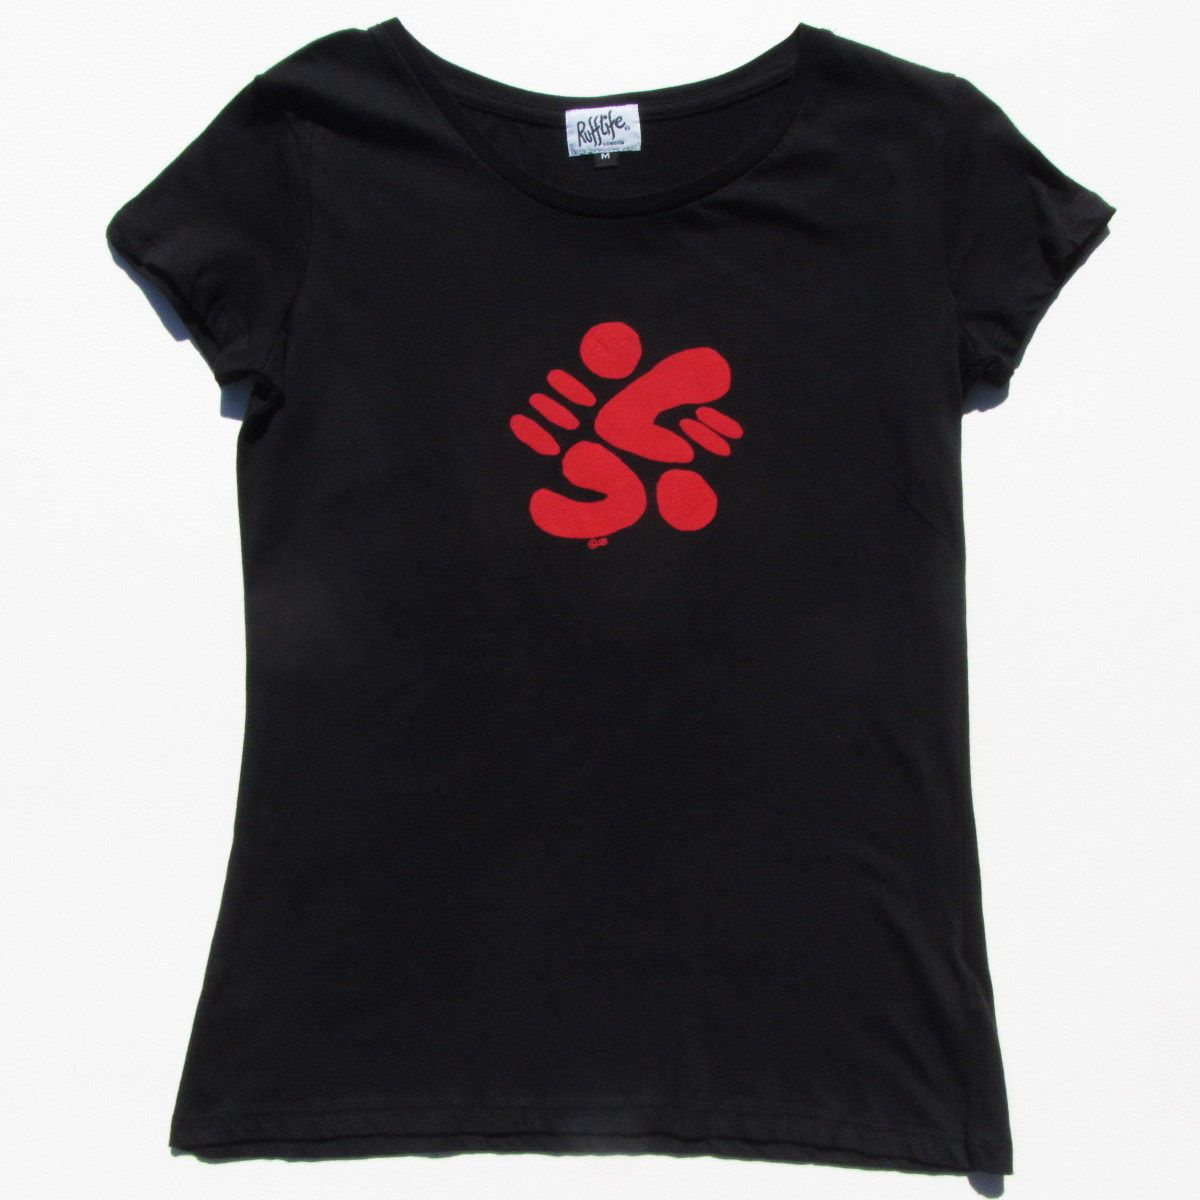 Splodge on women's black t-shirt